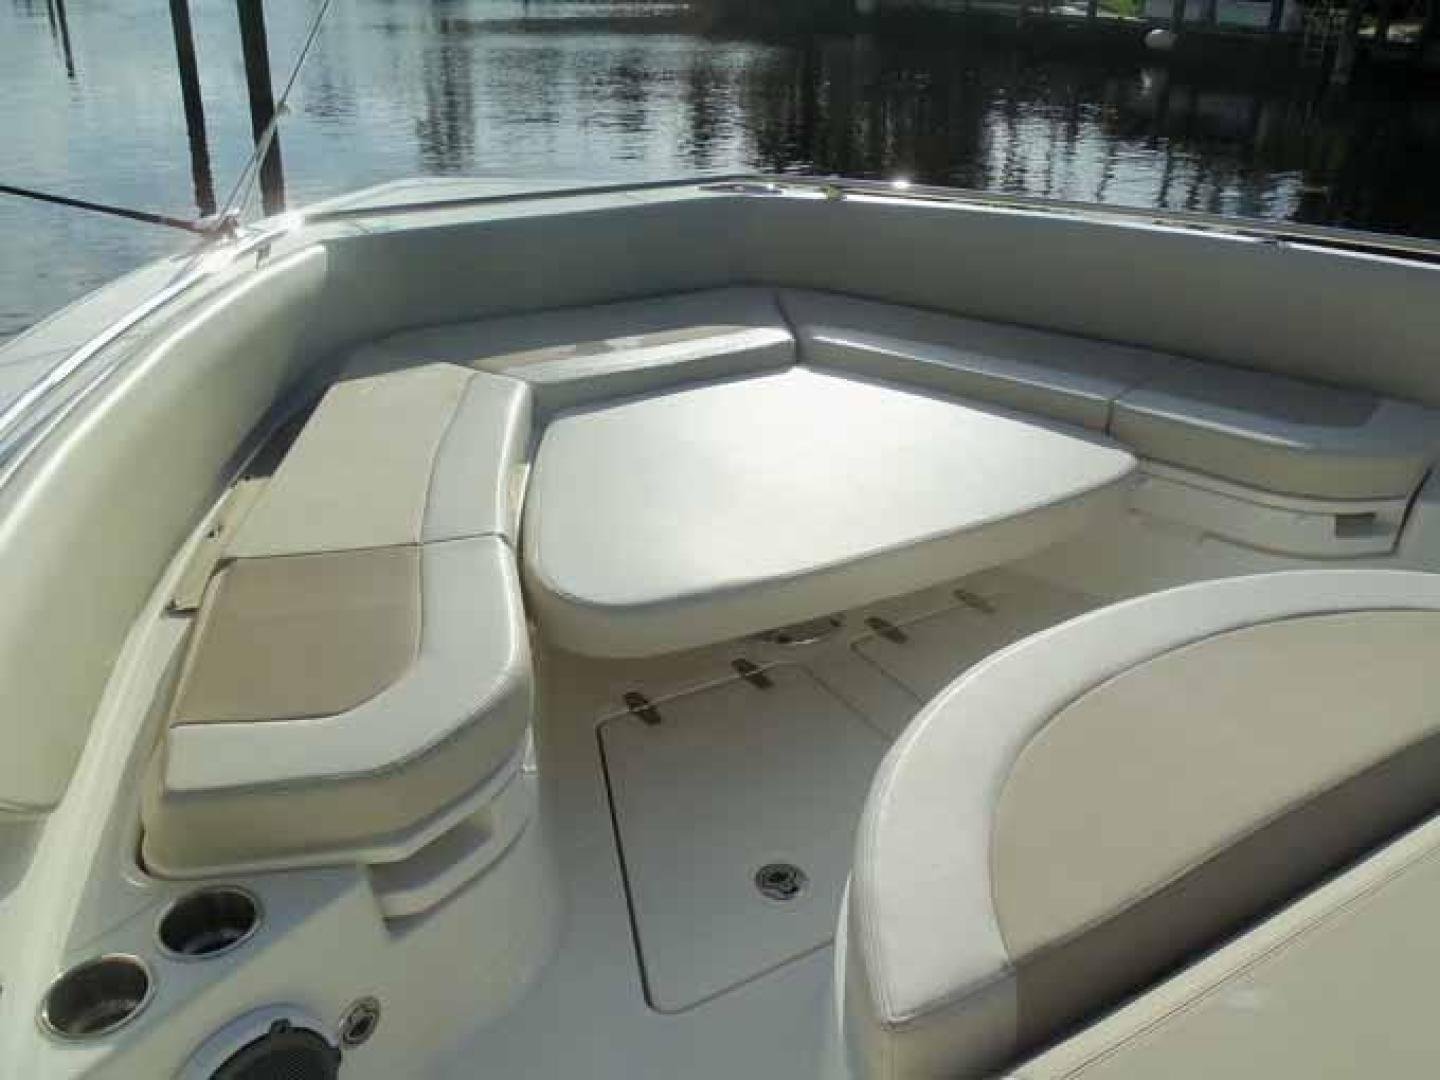 Boston Whaler-Outrage 42 2016-DEALERS CHOICE Ft. Lauderdale-Florida-United States-BOW SEATING TABLE DOWN-1058302 | Thumbnail